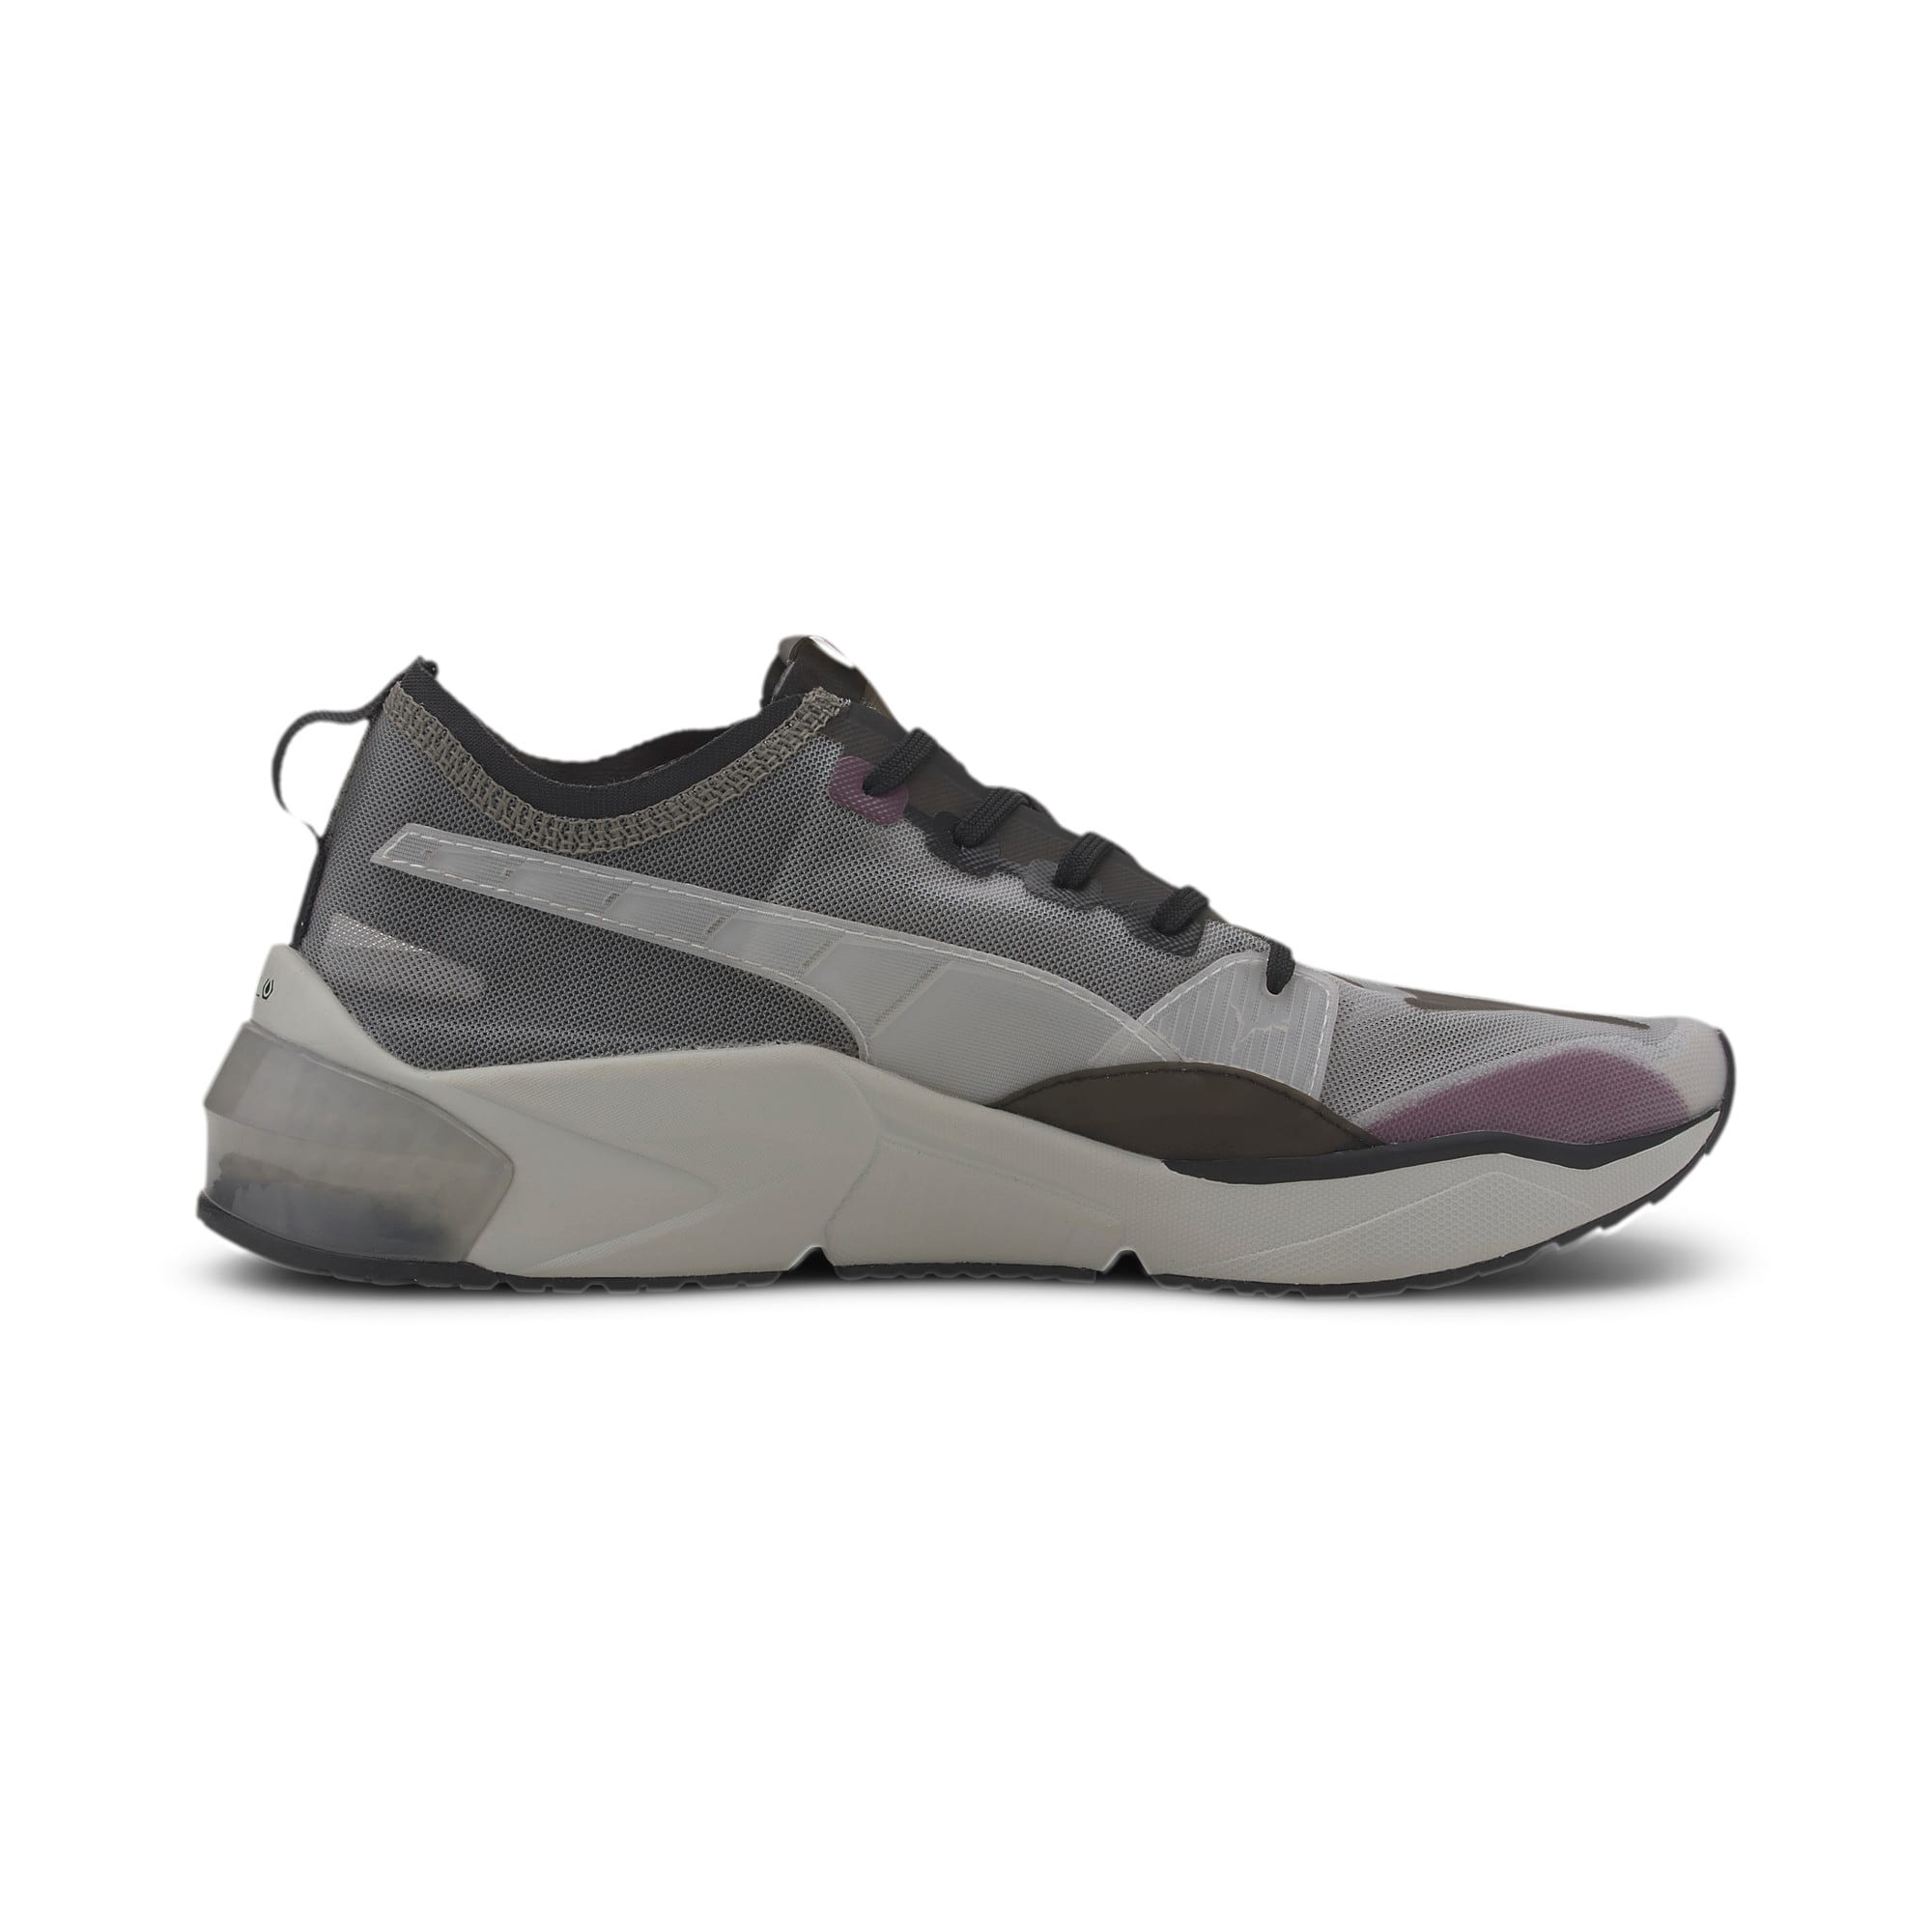 Thumbnail 5 of LQDCELL Optic Sheer Training Shoes, Gray Violet-Puma Black, medium